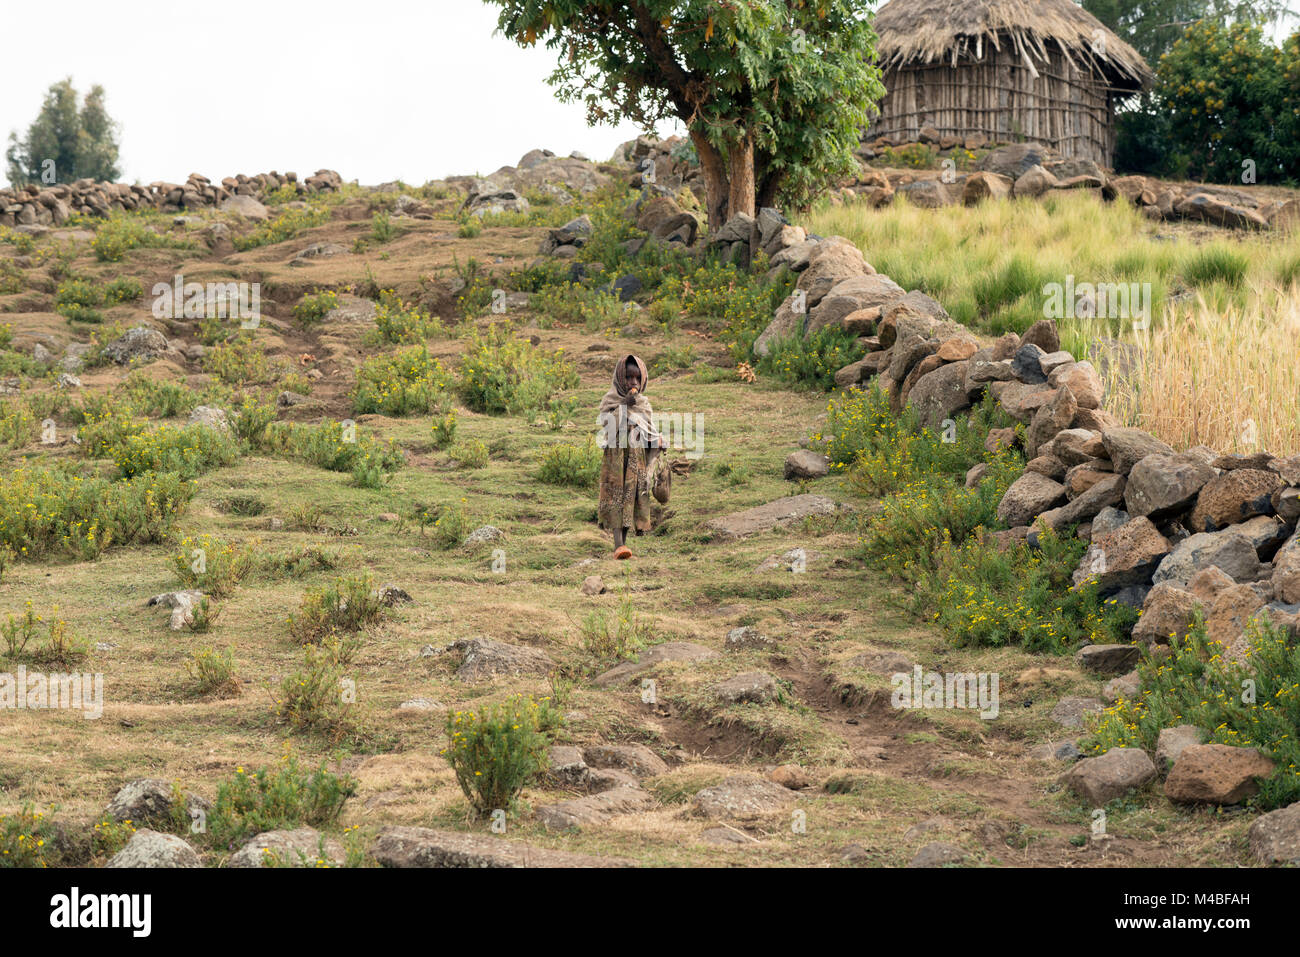 A young indigenous Tigrayan (Tigray) girl walking home in a remote village in northern Ethiopia. - Stock Image